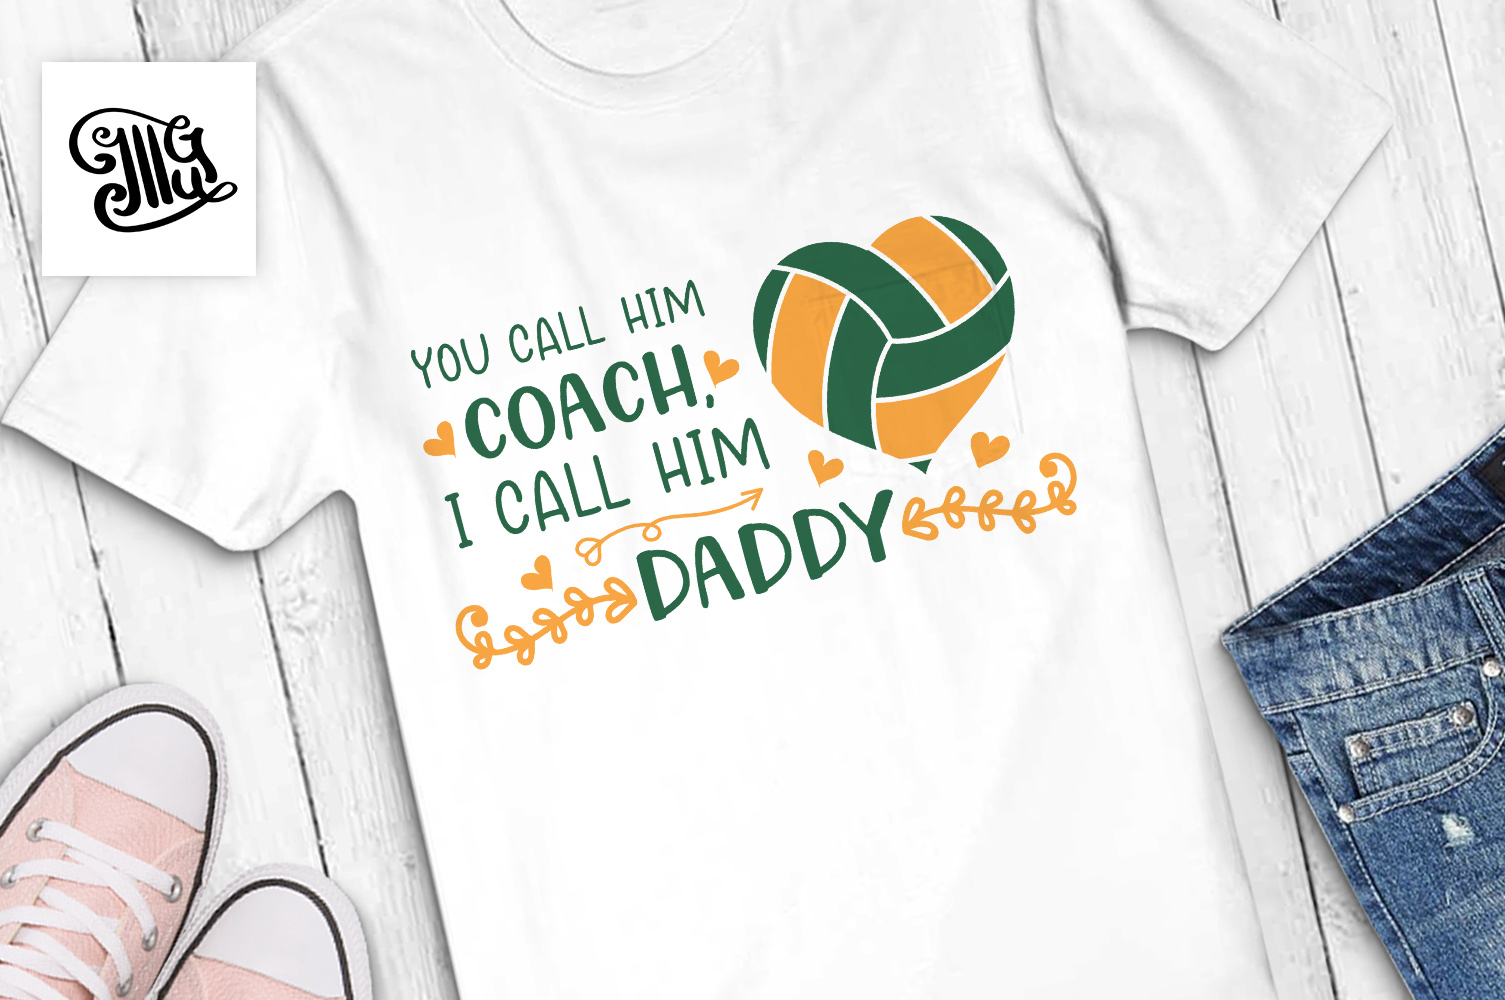 You call him coach,I call him daddy example image 1